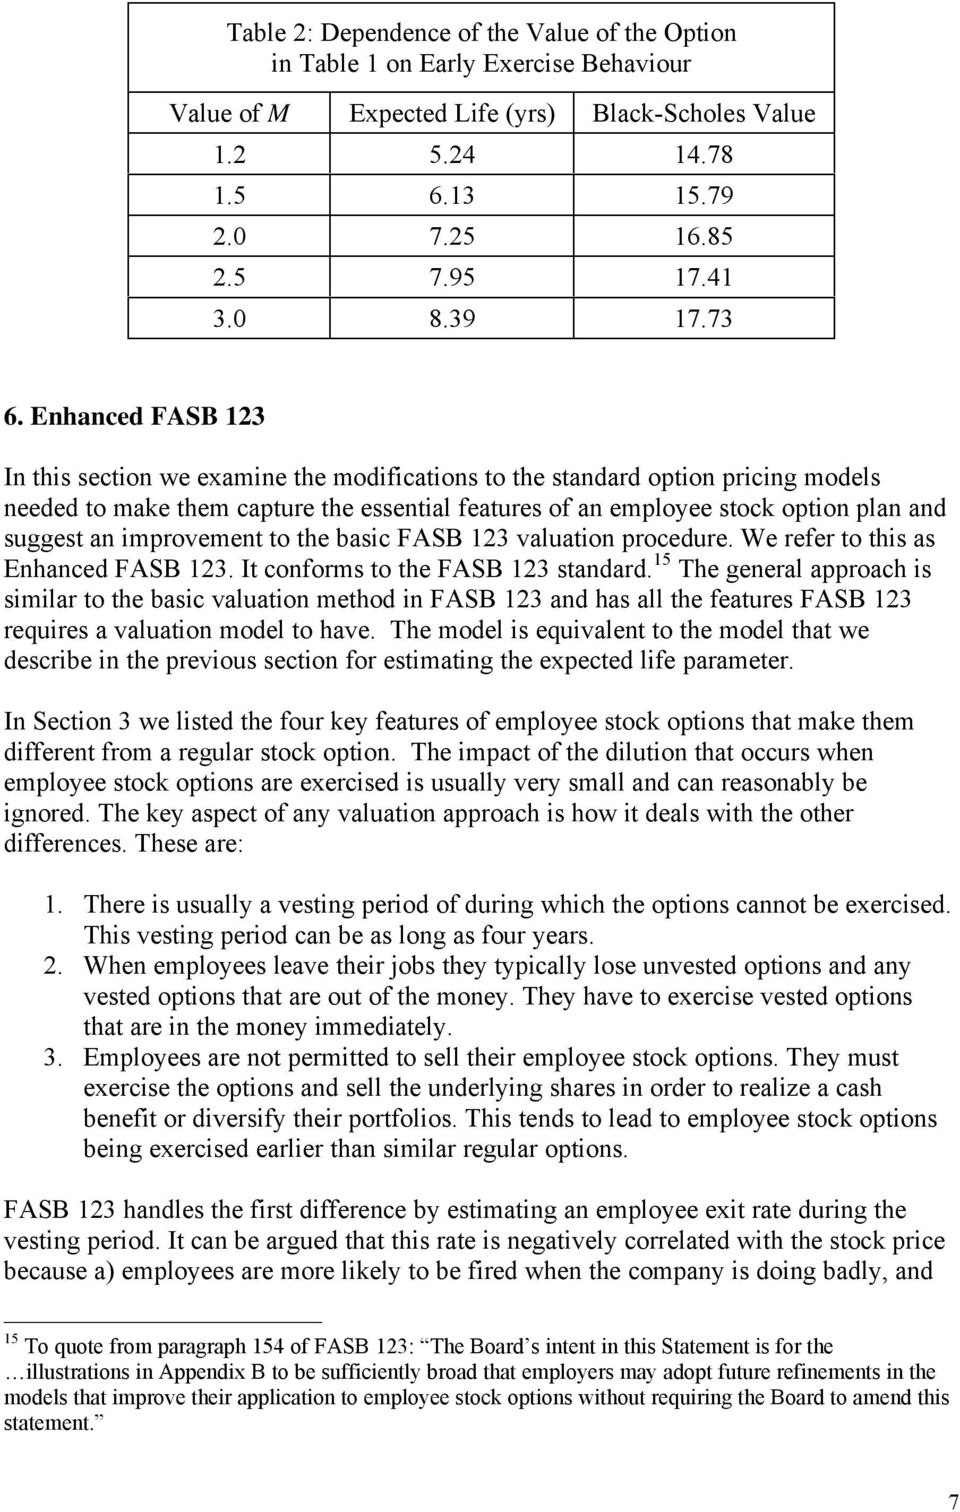 Enhanced FASB 123 In this section we examine the modifications to the standard option pricing models needed to make them capture the essential features of an employee stock option plan and suggest an